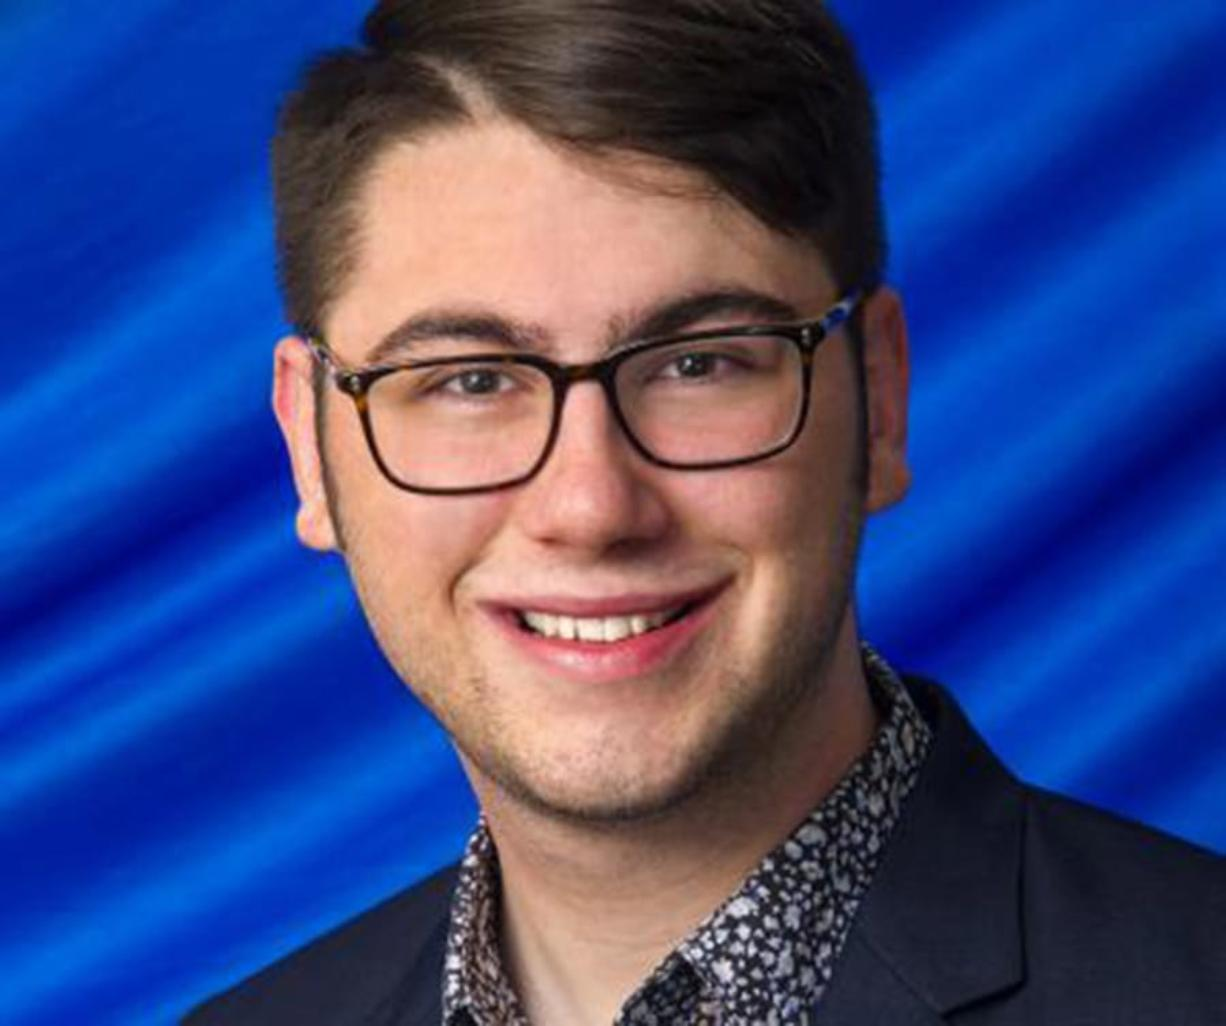 Vancouver School of Arts and Academics grad Hunter Stuehm will serve a one-year term as the student trustee at Western Washington University. (Contributed photo)